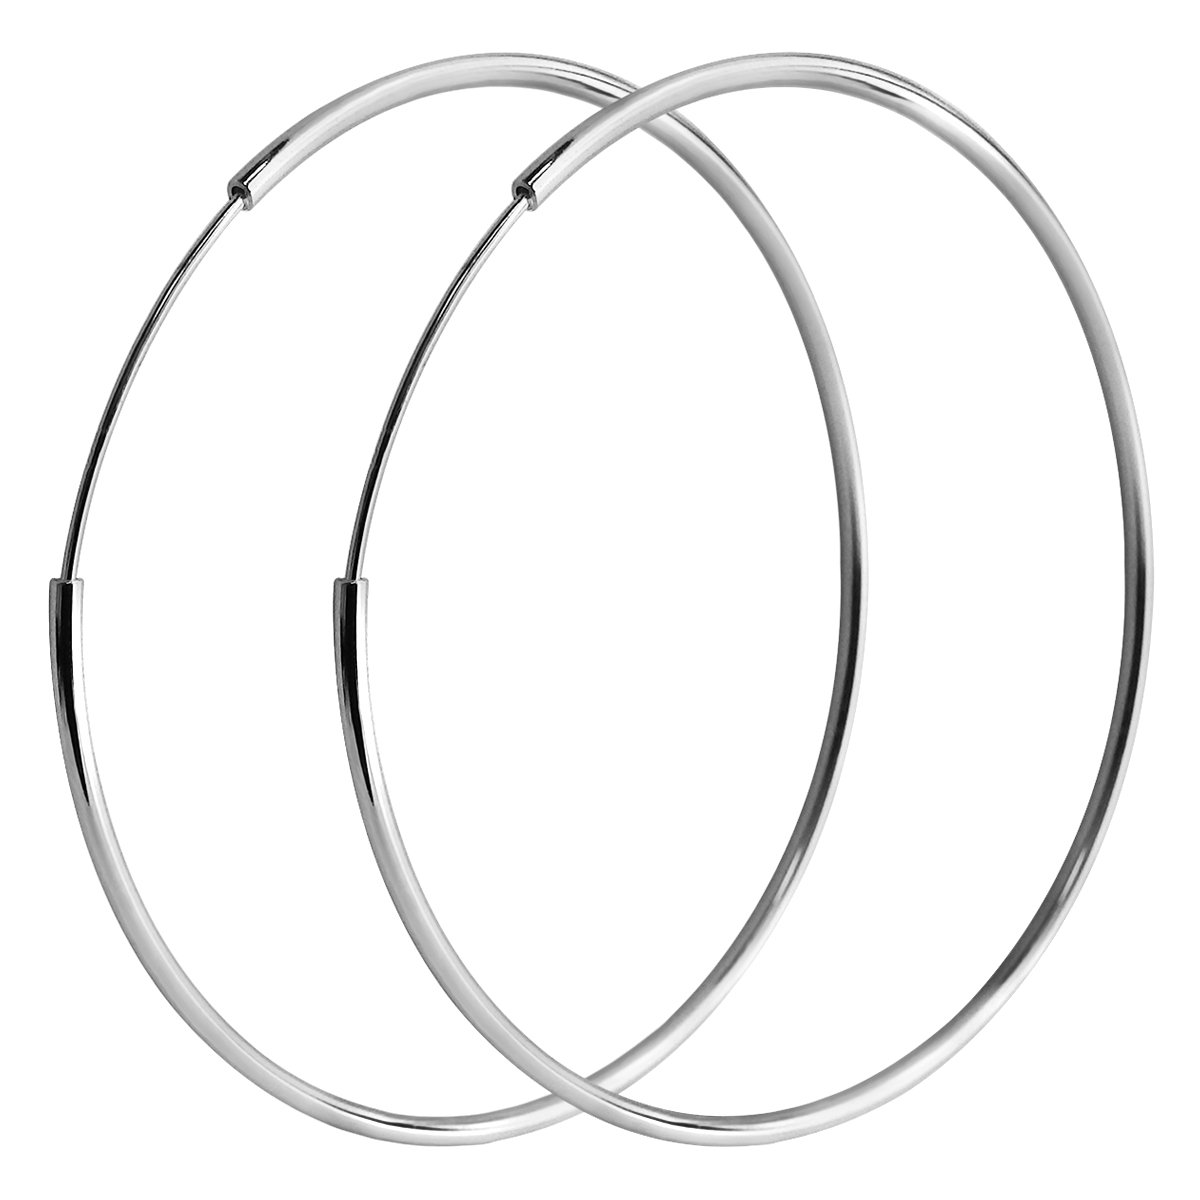 IDoy 925 Sterling Silver Hoop Earrings - Simple Polished Large Round Earrings for Women 50mm